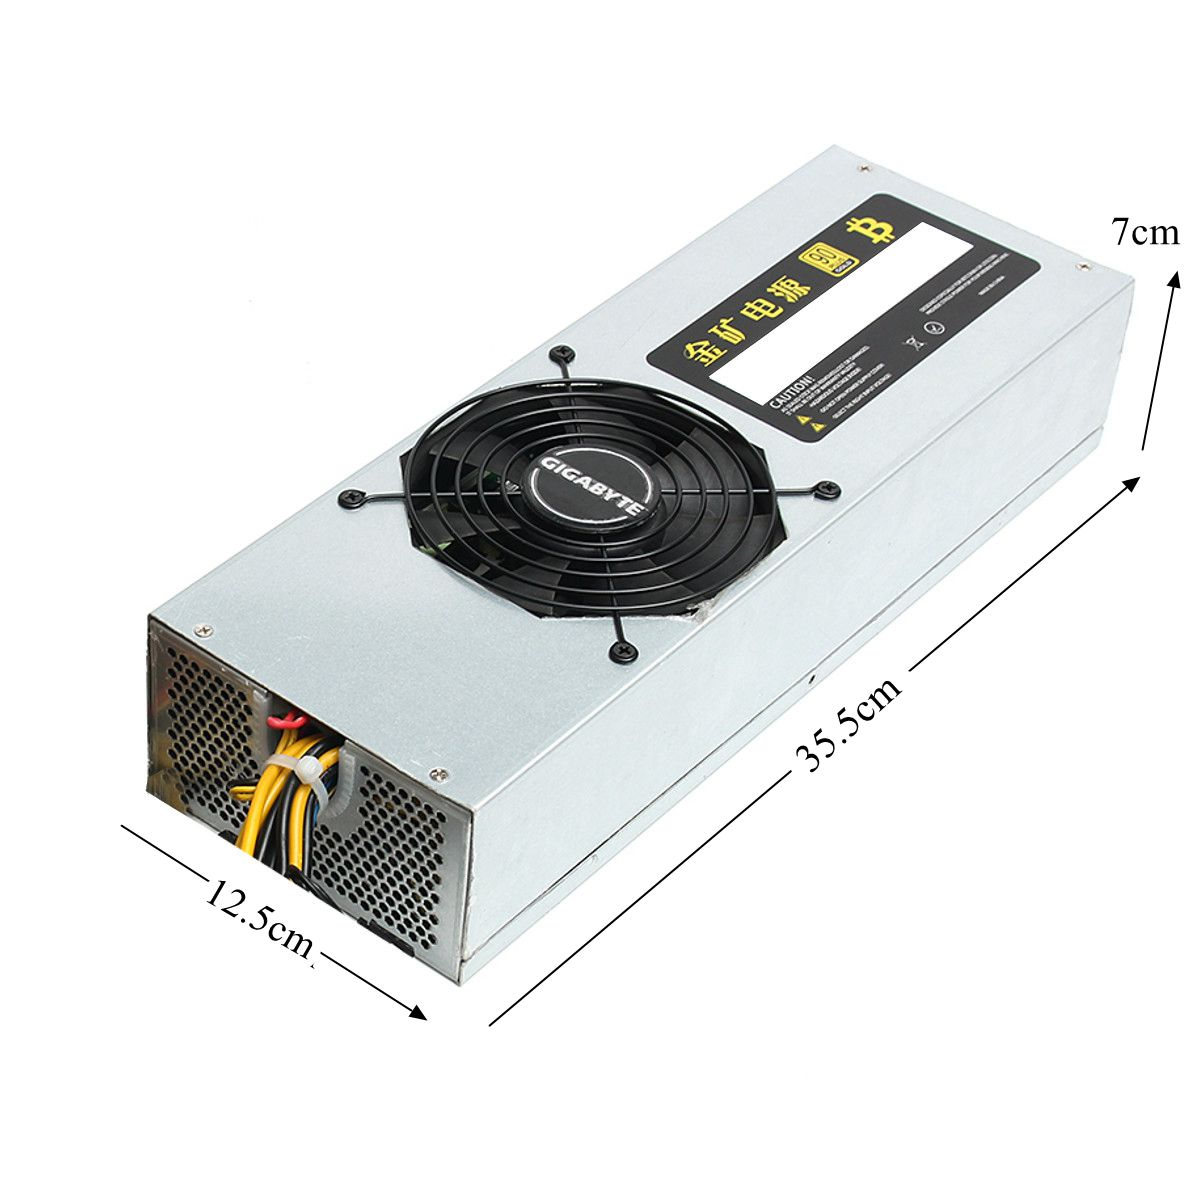 95% 2200W 24 Pin Mining Machine Power Supply For Antminer Eth S7 S9 Bitcoin Miner